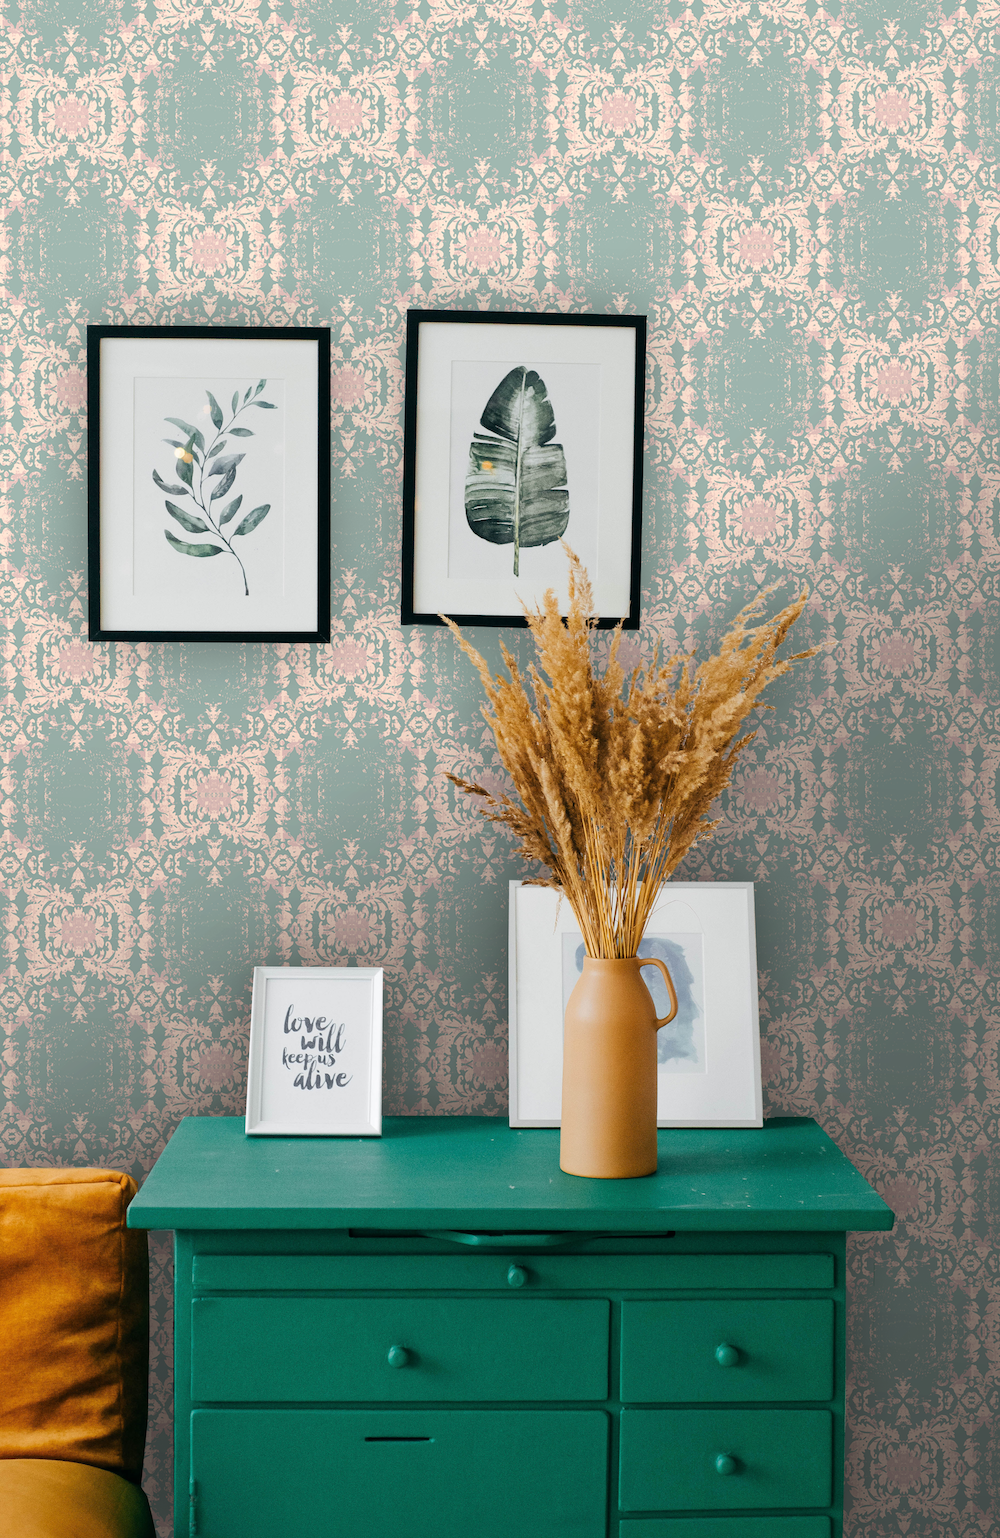 In vivid and subtle shades, green is the perfect way to bring a pop of color into your home. Here are 5 unexpectedly simple ways to go big, bold and beautiful with green this season. 5 Quick Ways to Decorate with Green for Spring - Boho Luxe Home!